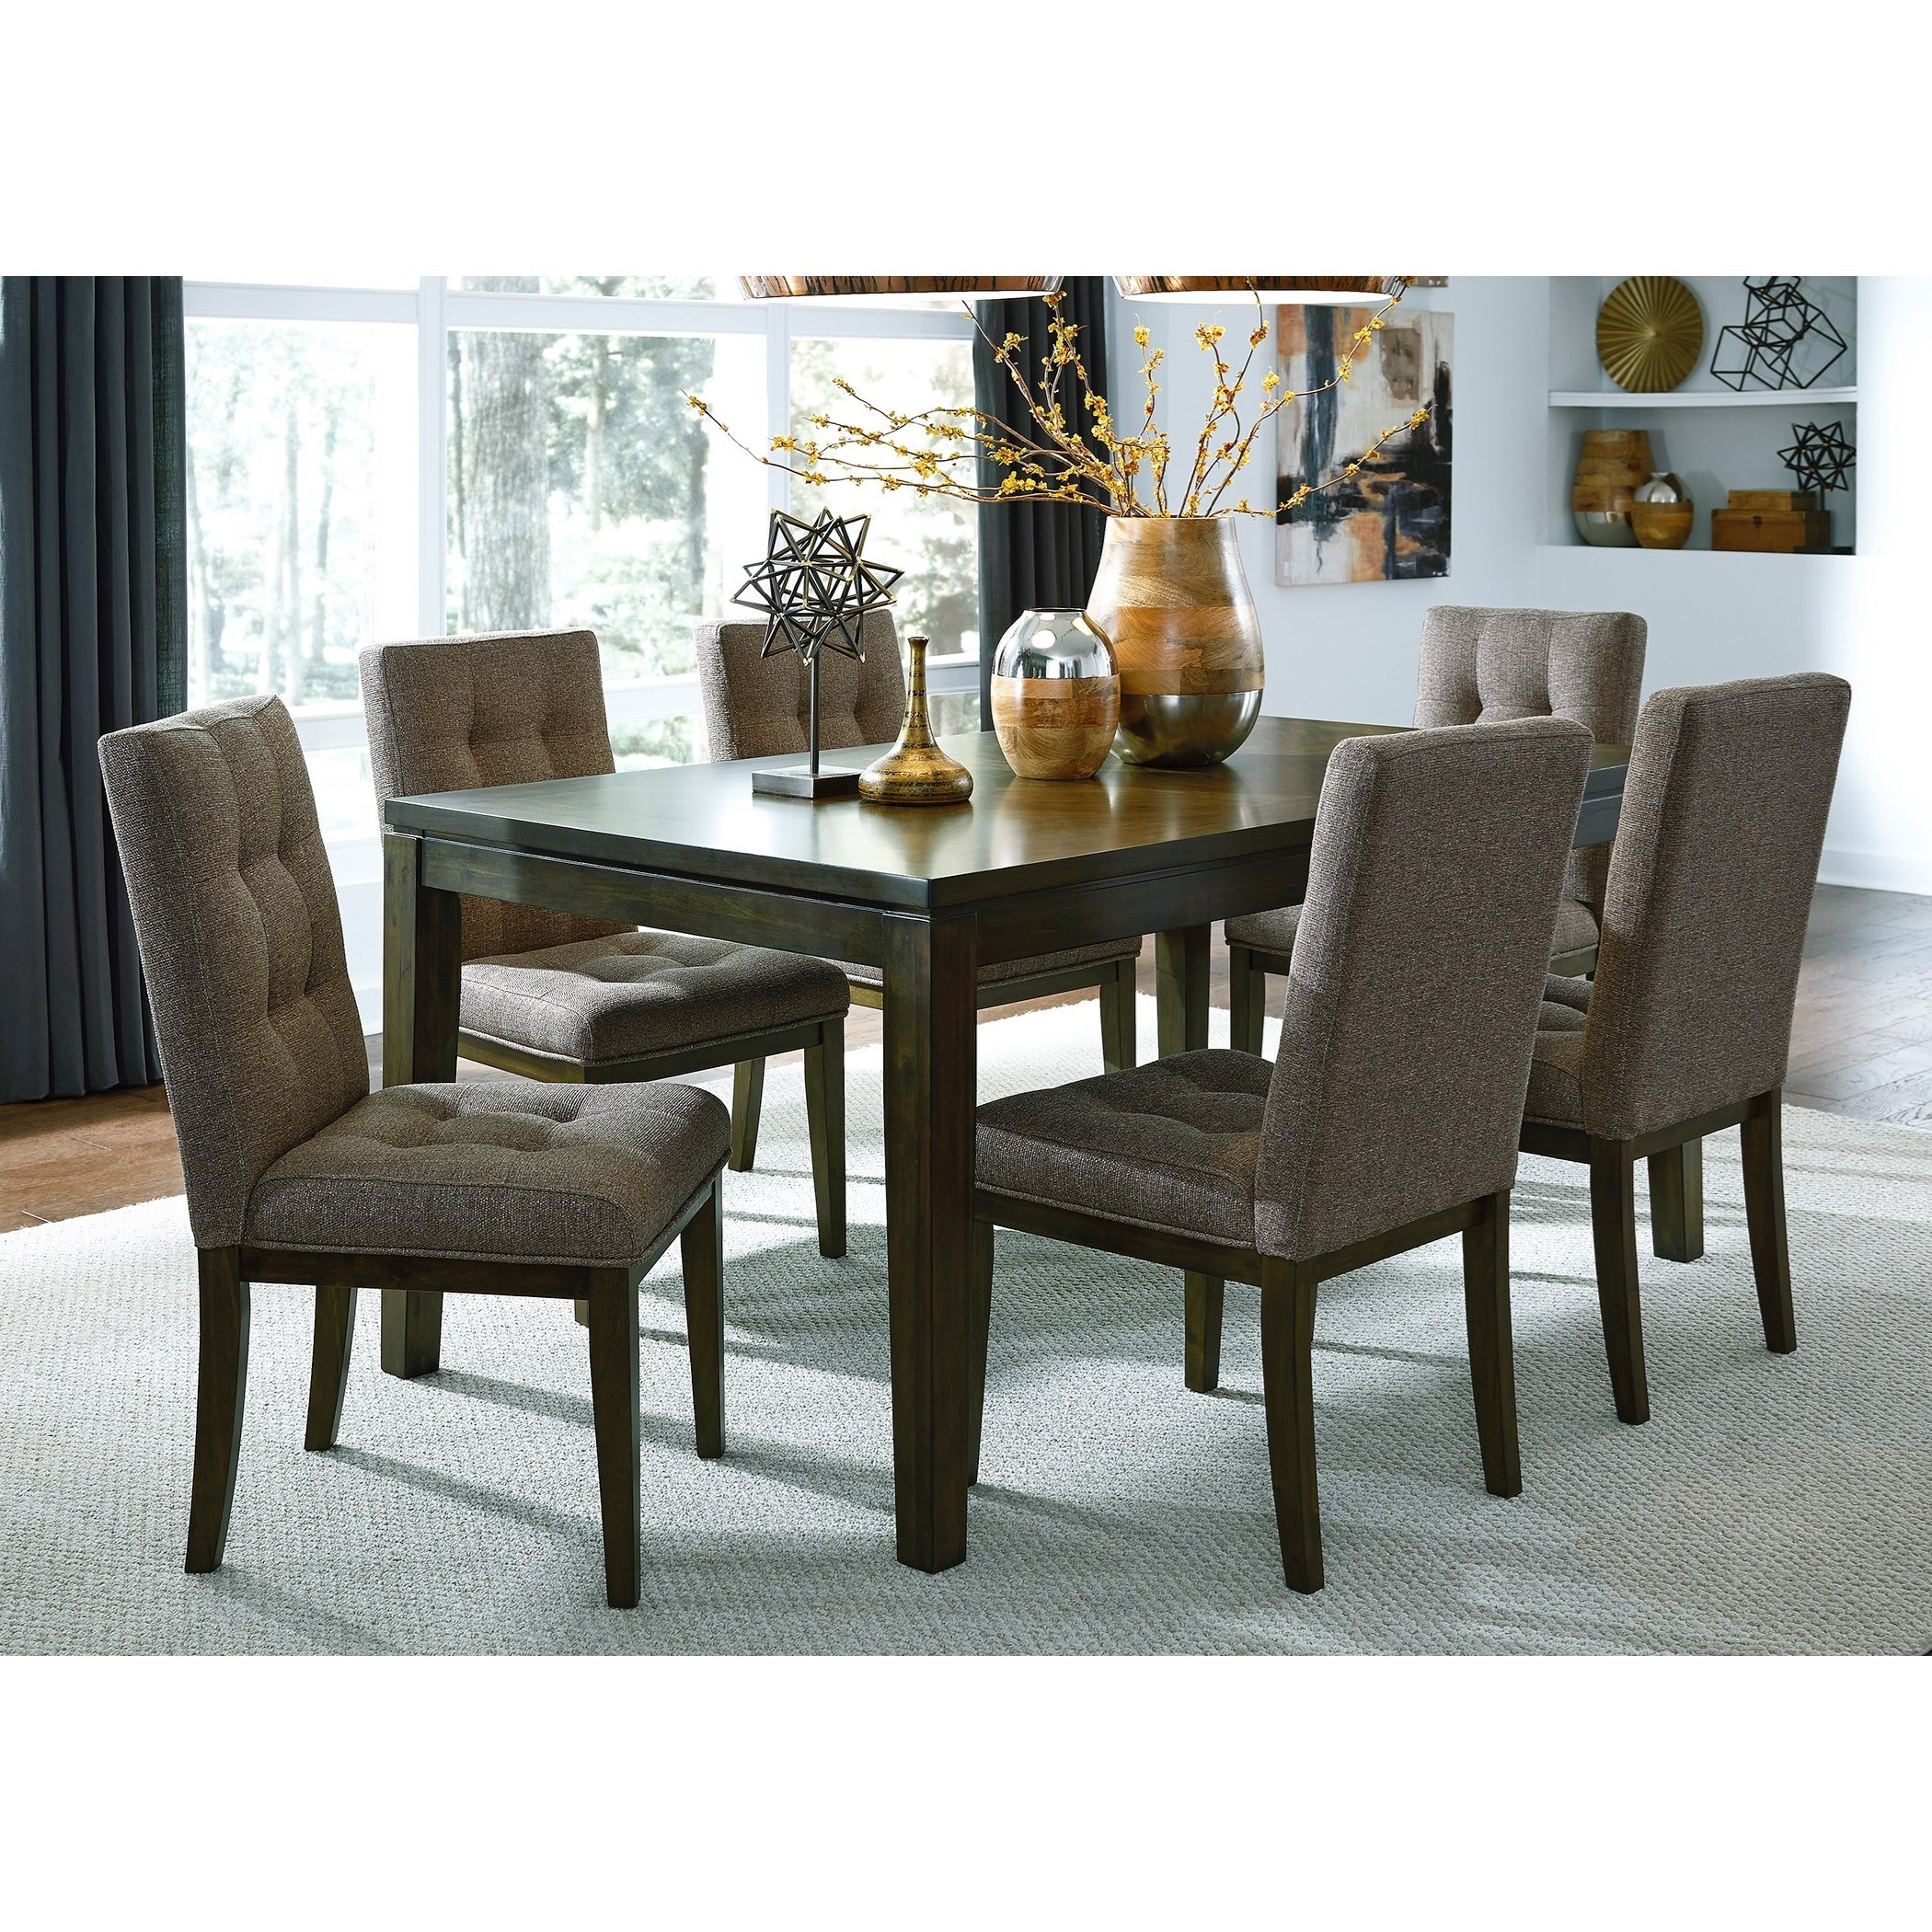 Liberty furniture belden place contemporary table and for Furniture 321